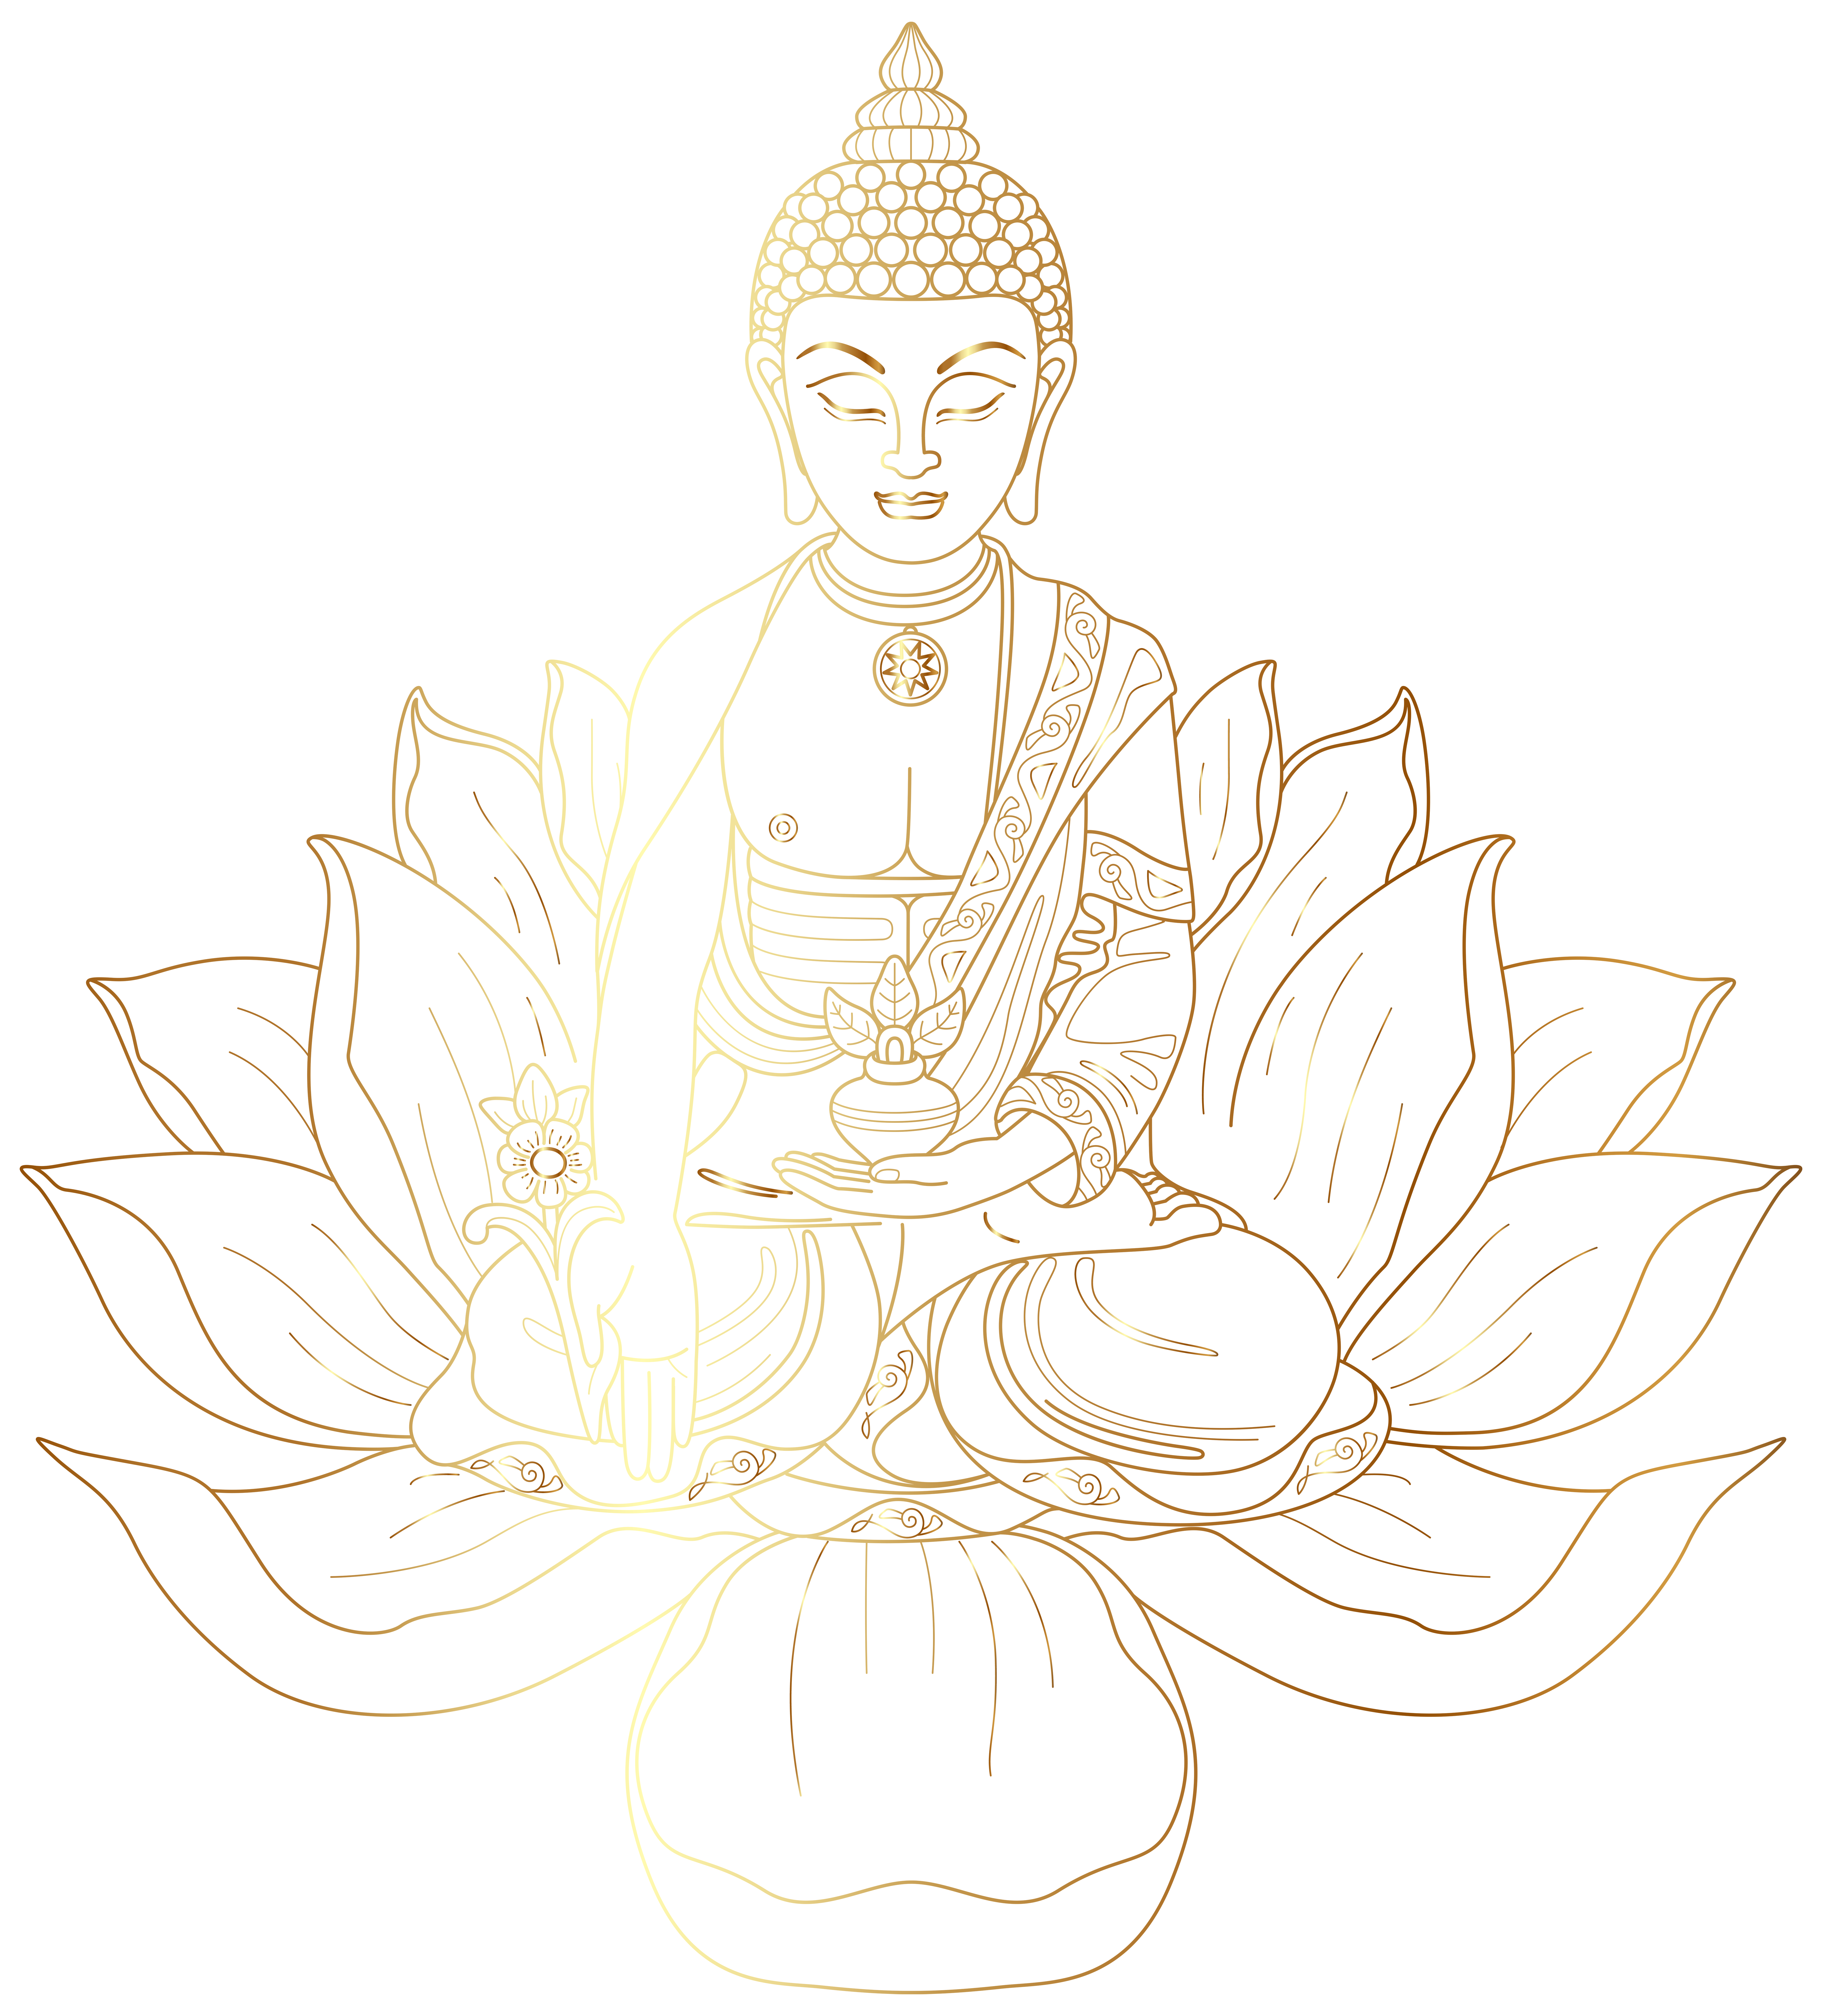 svg stock Buddha clipart china drawing. Decoration png clip art.